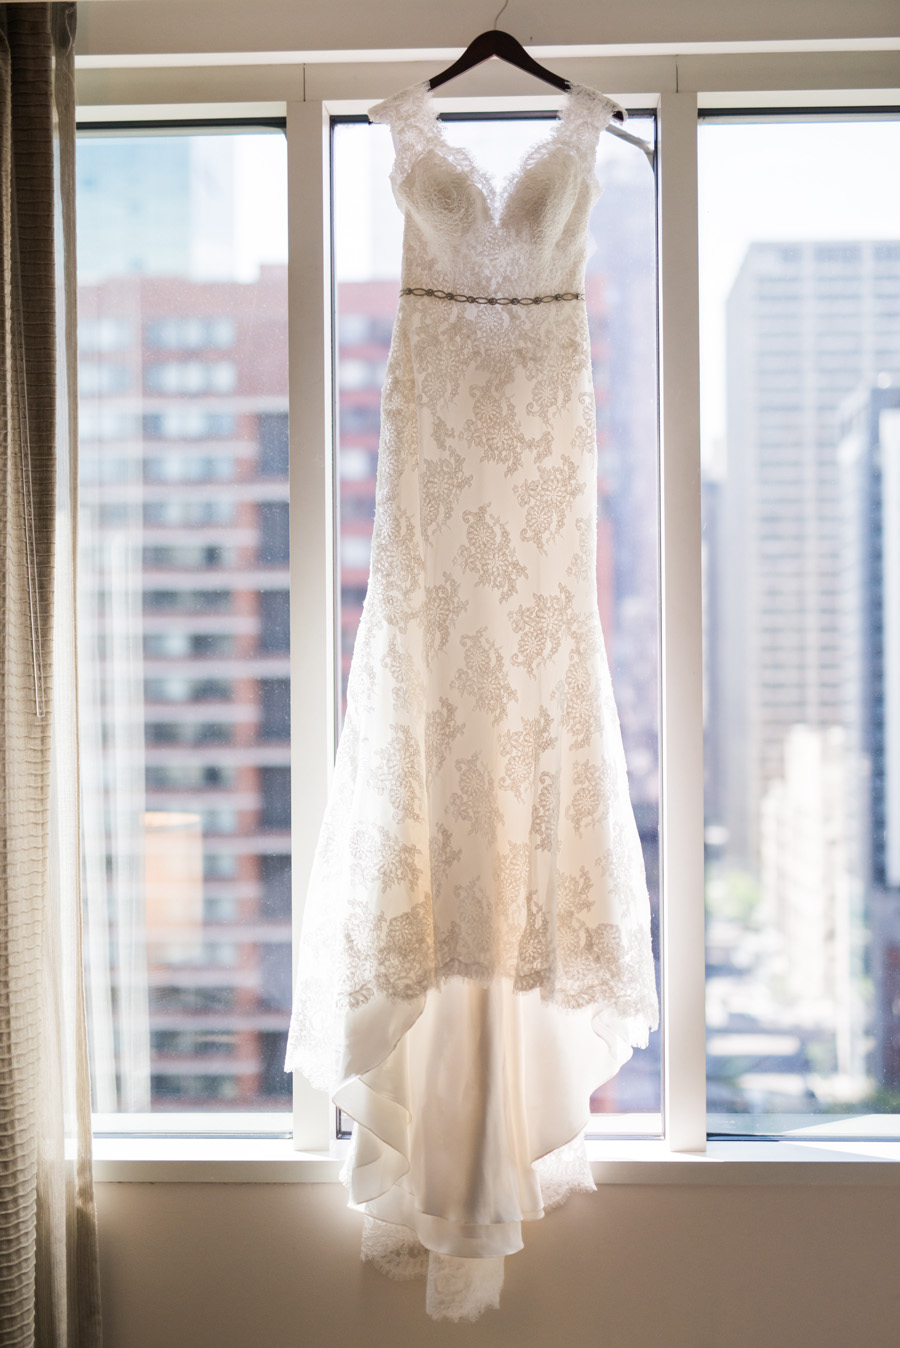 Hyatt Magnificent Mile, Chicago, Illinois. Wedding photography by Two Birds Photography. Classic, timeless, and natural light. Serving Chicago and the suburbs.